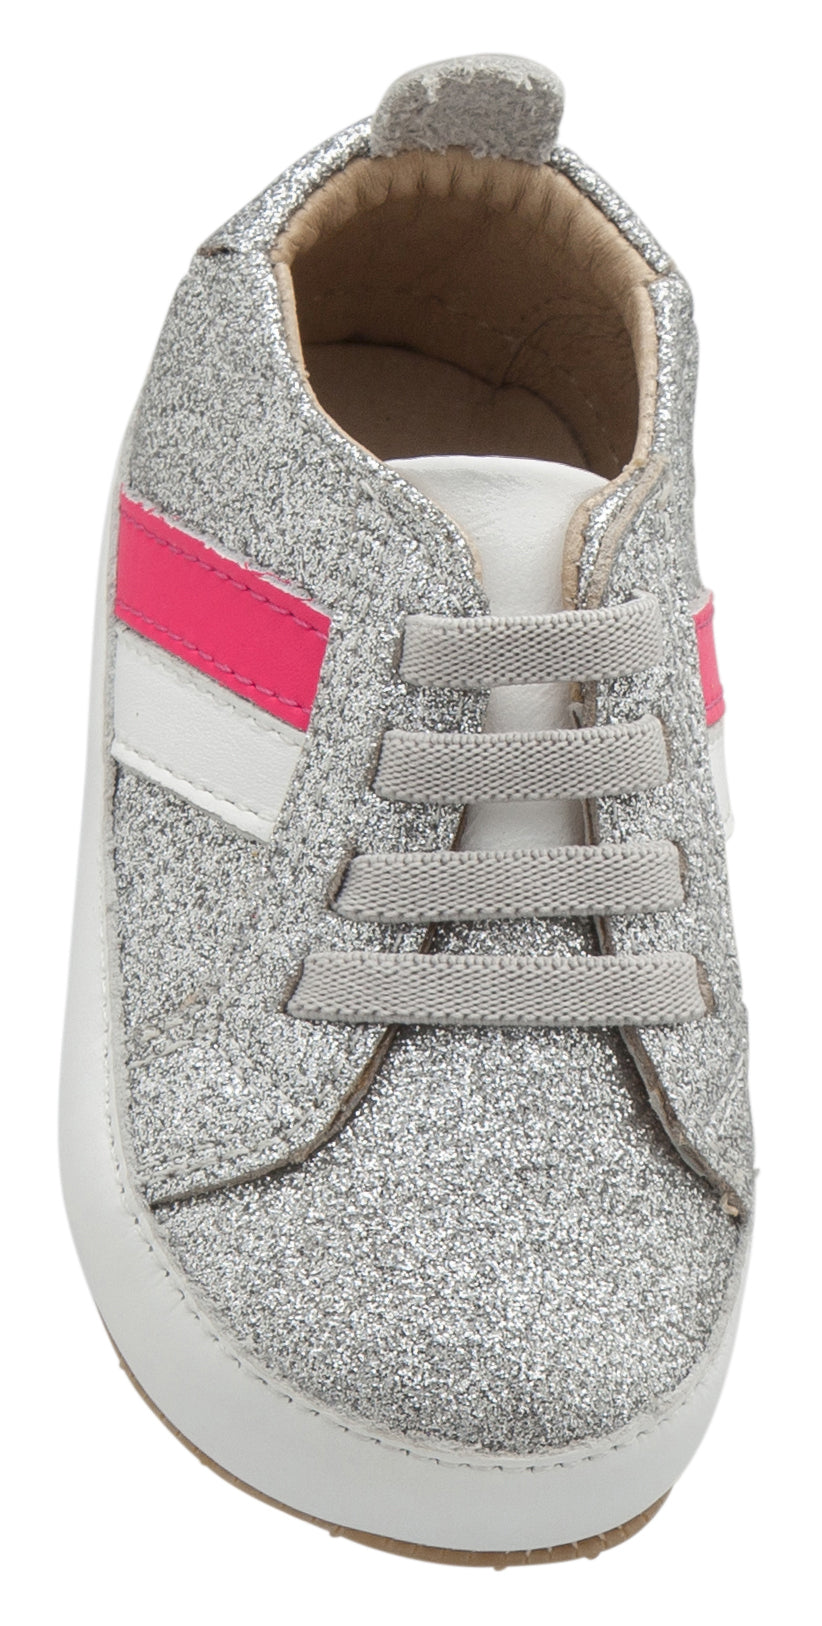 Old Soles Girl's 0028R Iggy Shoe, Glam Argent/Snow/Neon Pink